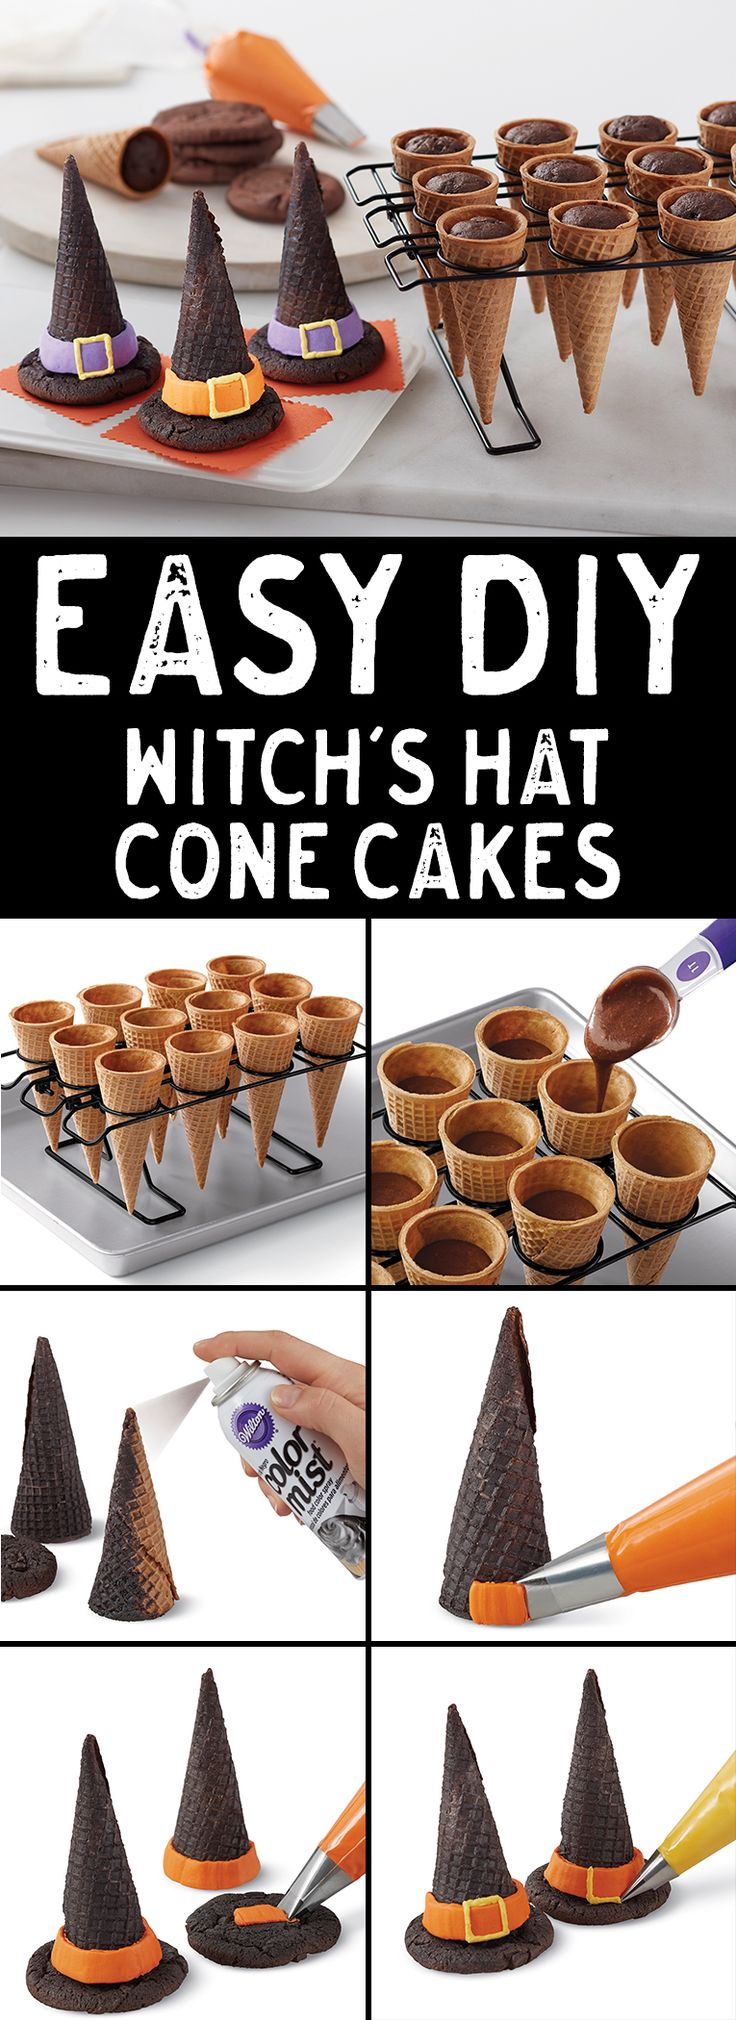 How to Make Halloween Witch Hat Cupcake Cones - Create these cute bewitching cone hats for your Halloween celebration! Easy to make and decorate, these sweet treats are sure to be enjoyed by kids and adults alike.                                                                                                                                                                                 More